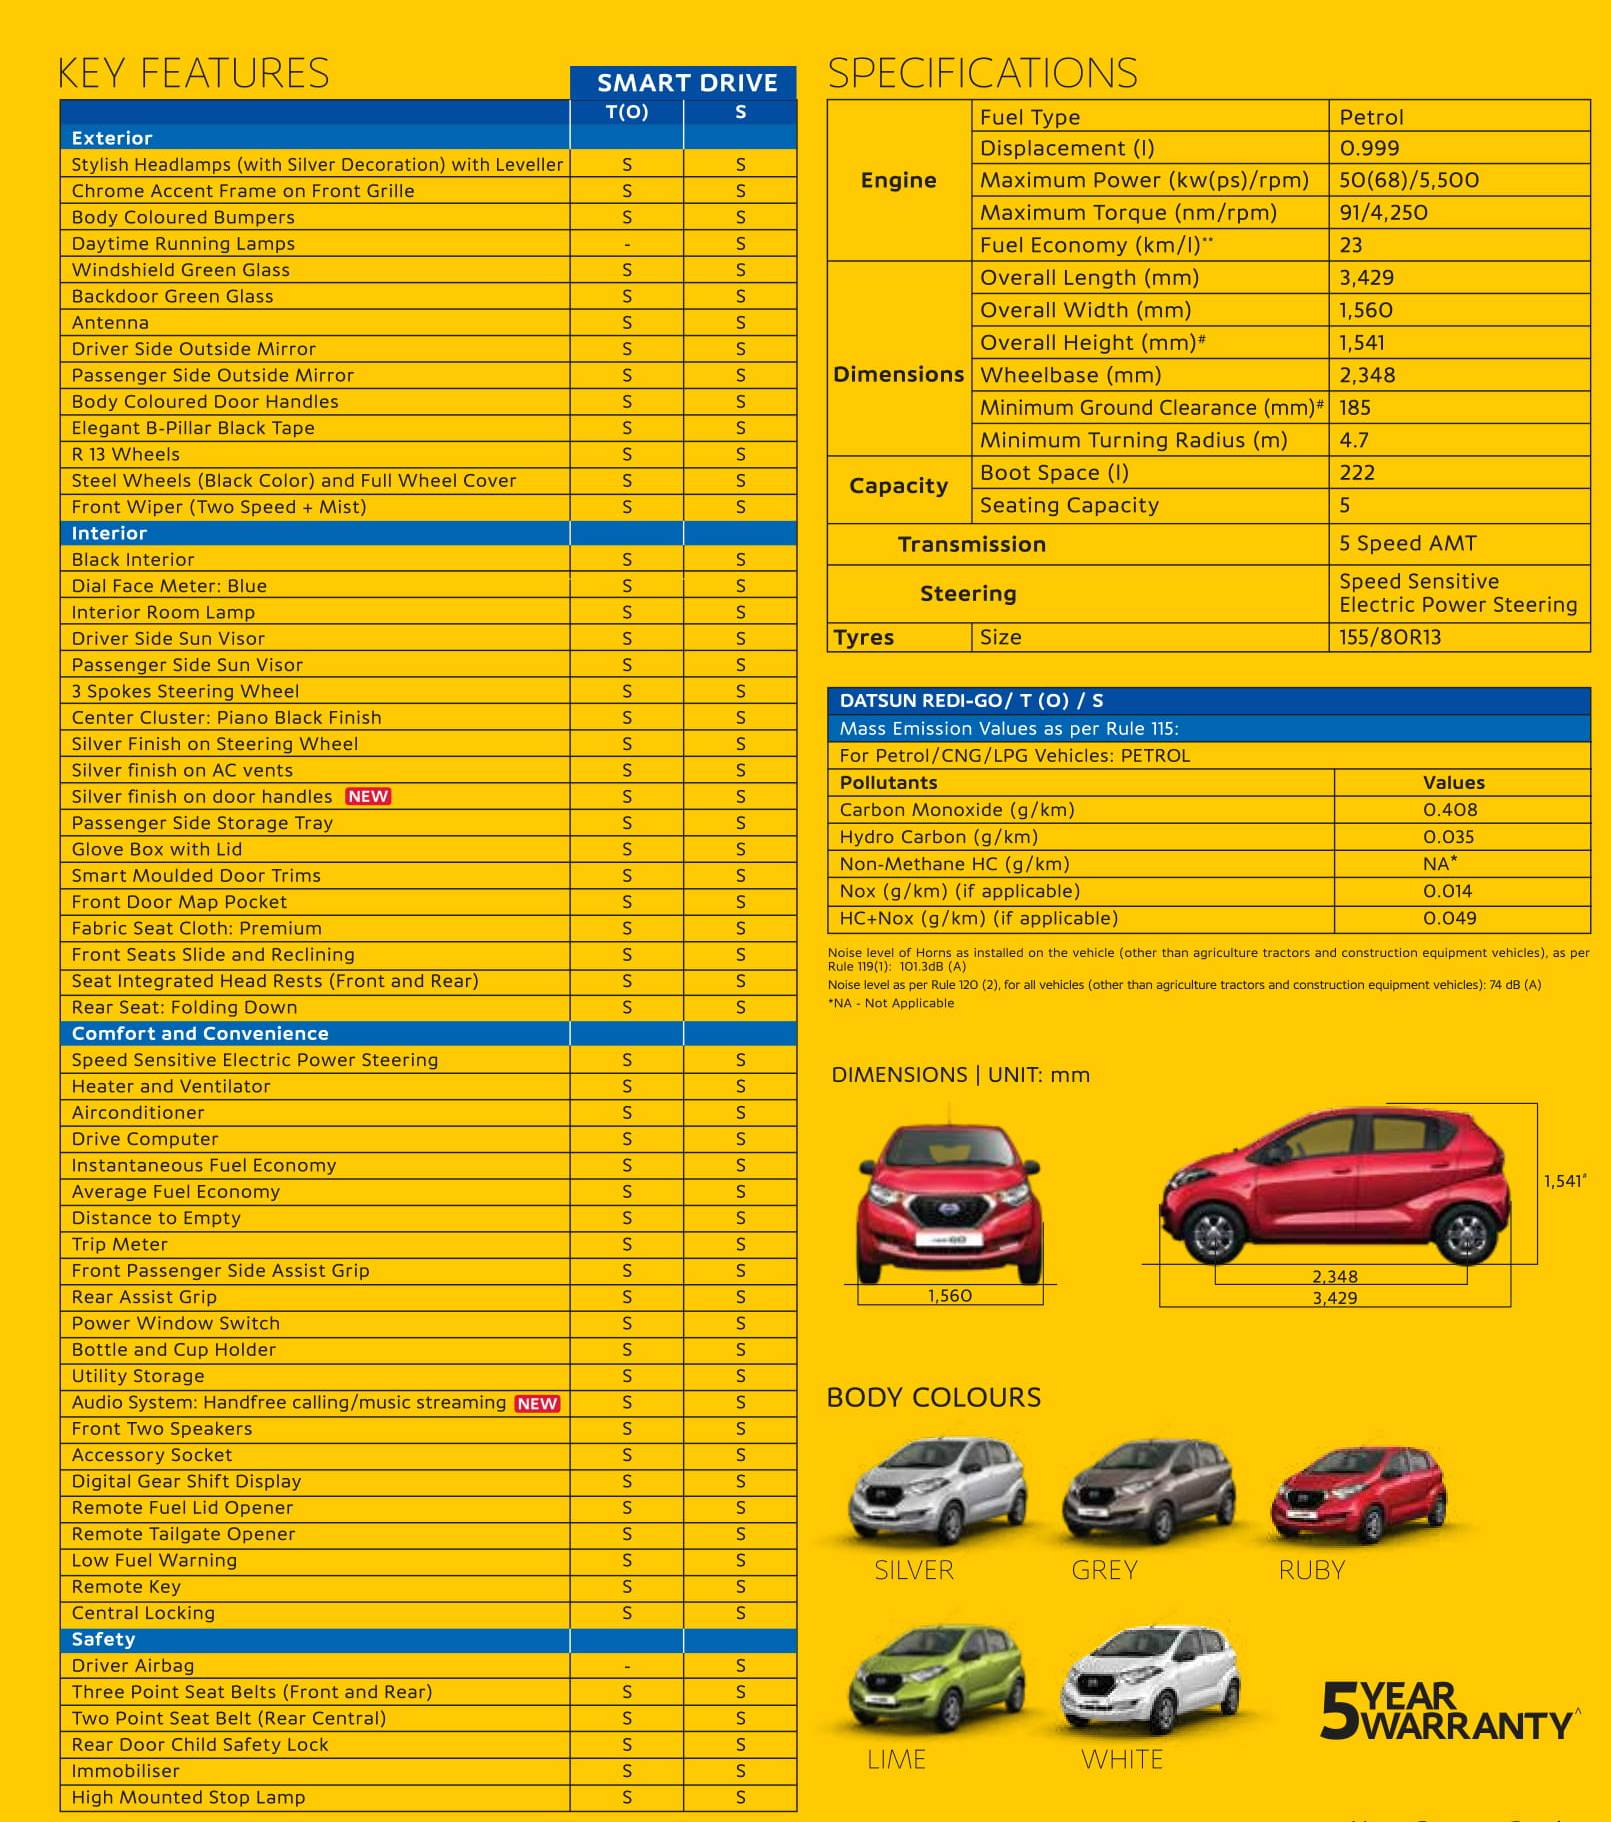 January 24, 2018-New-2018-Datsun-GO-1.0-AMT-specs-features-and-variants.jpg